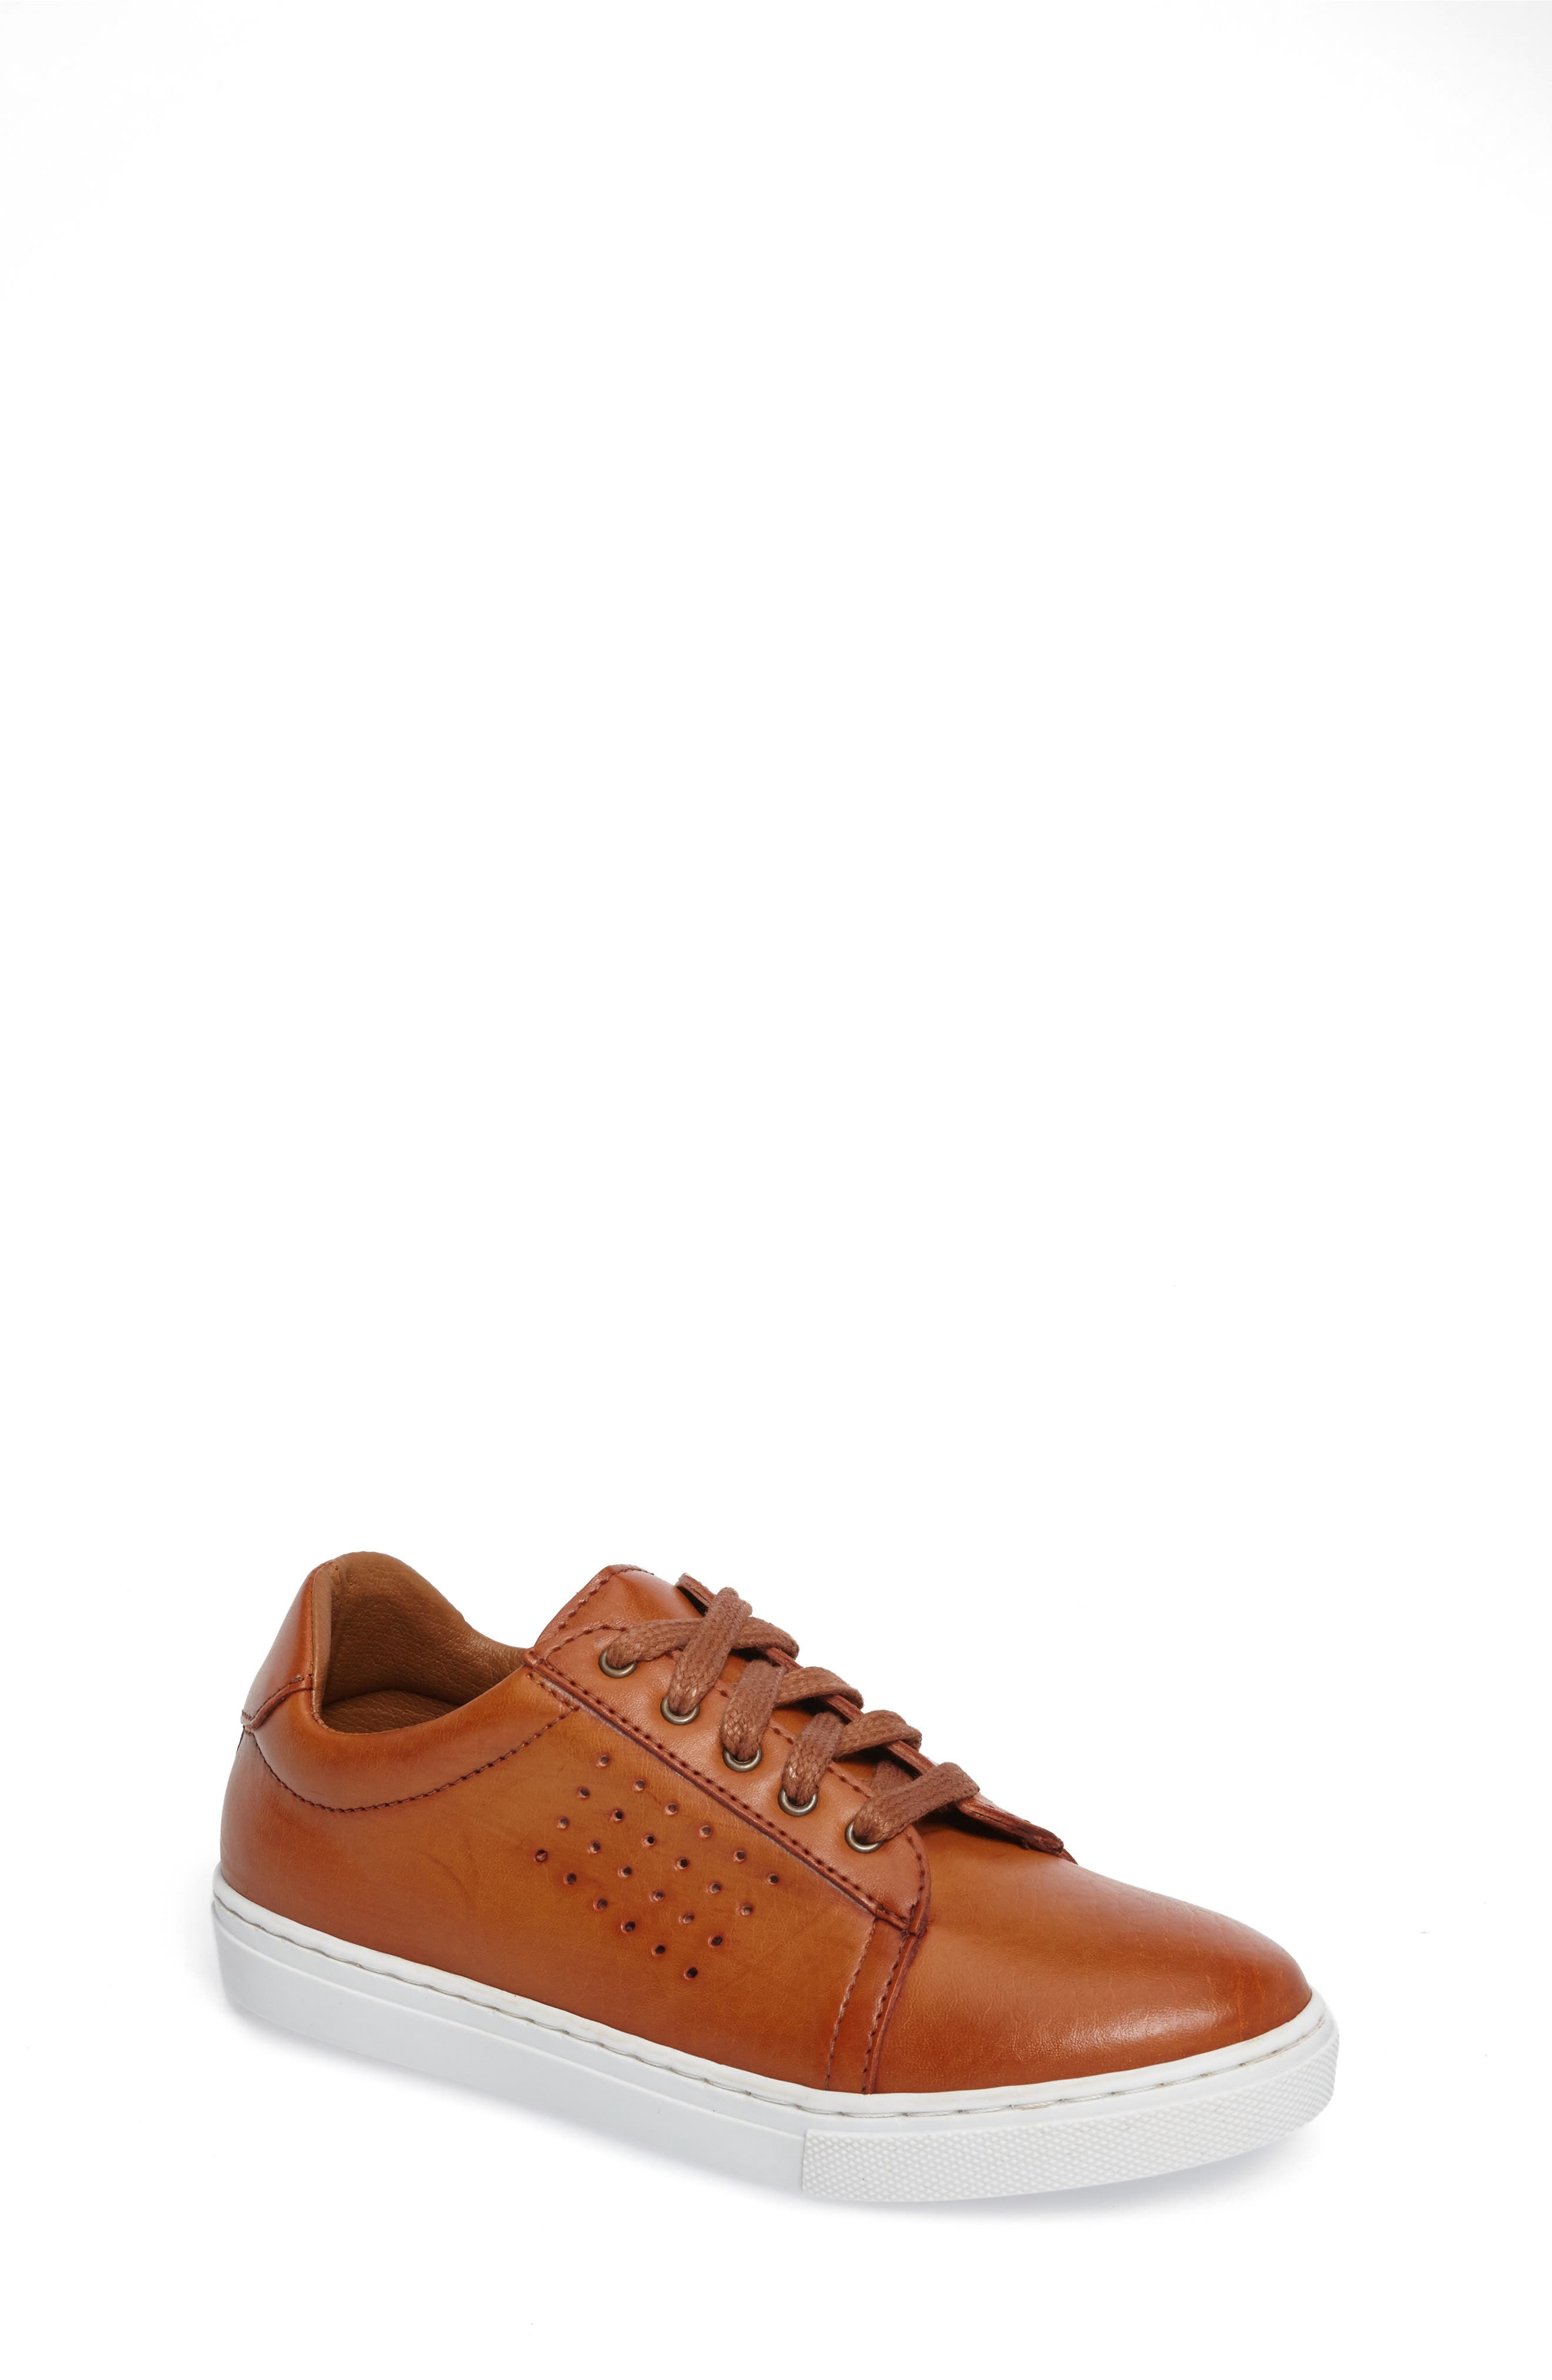 Grafte Perforated Sneaker,                         Main,                         color, NATURALE